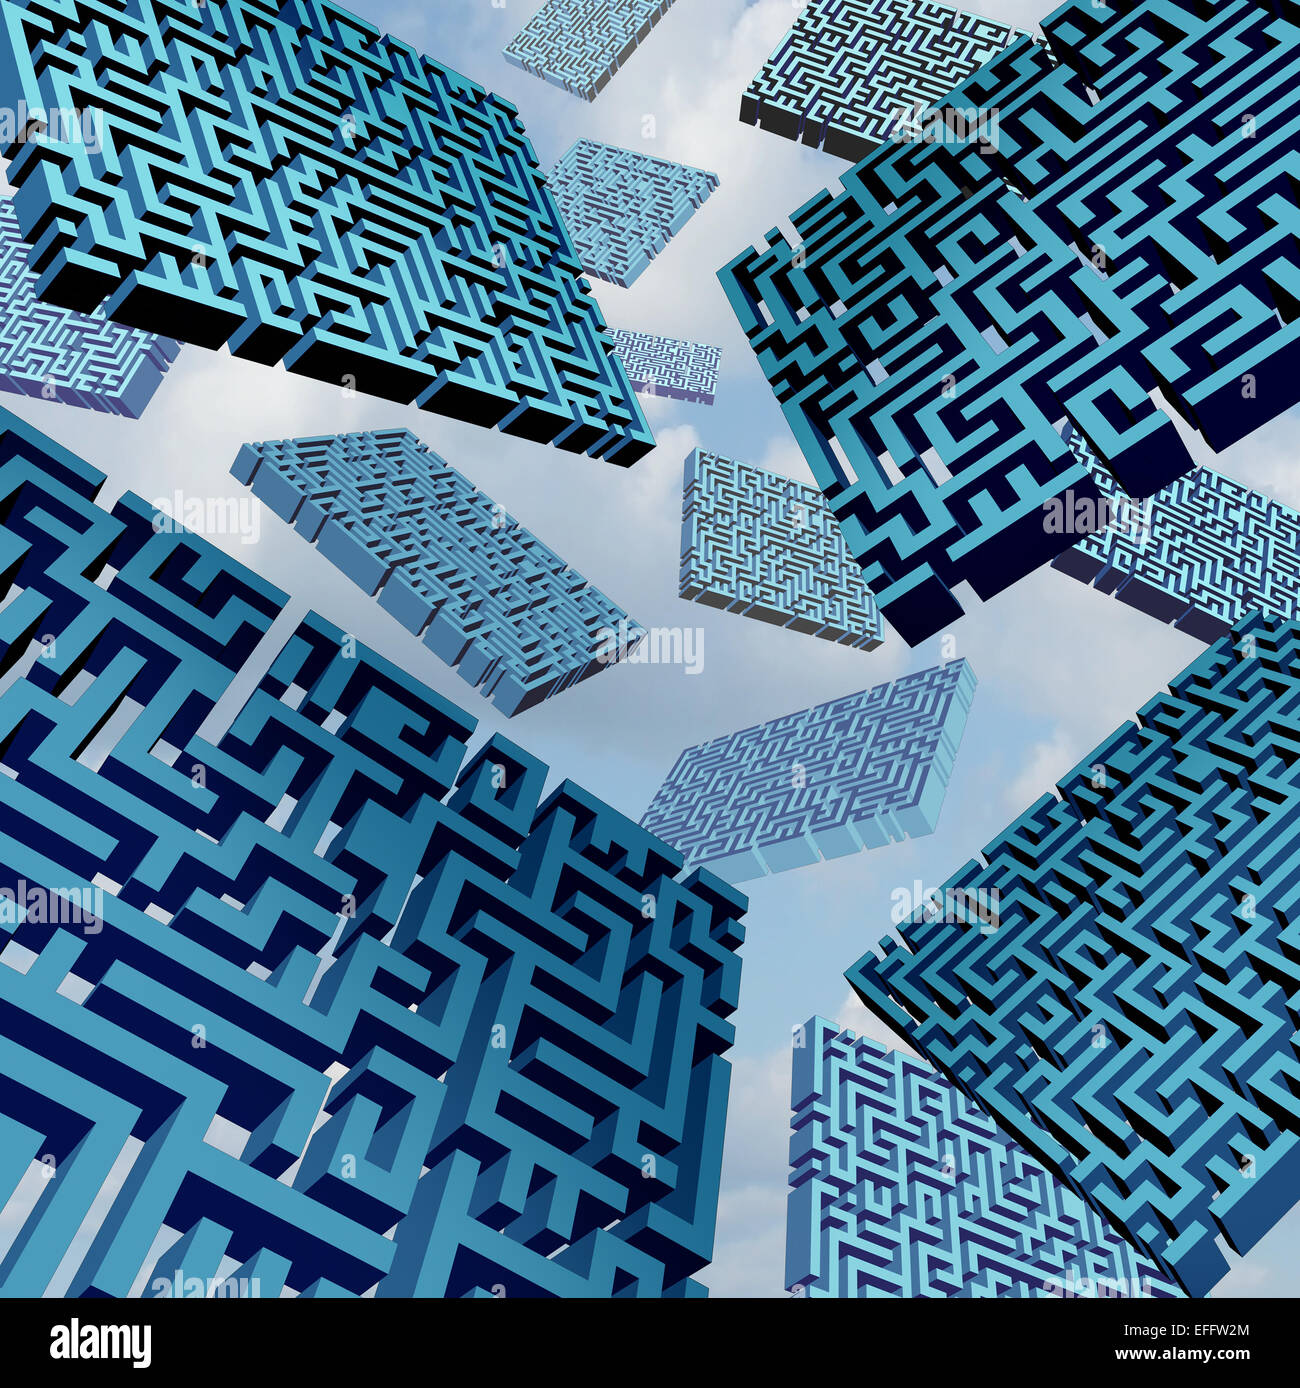 Maze confusion concept as a group of three dimensional labyrinth pieces floating in the sky as a metaphor for confused - Stock Image